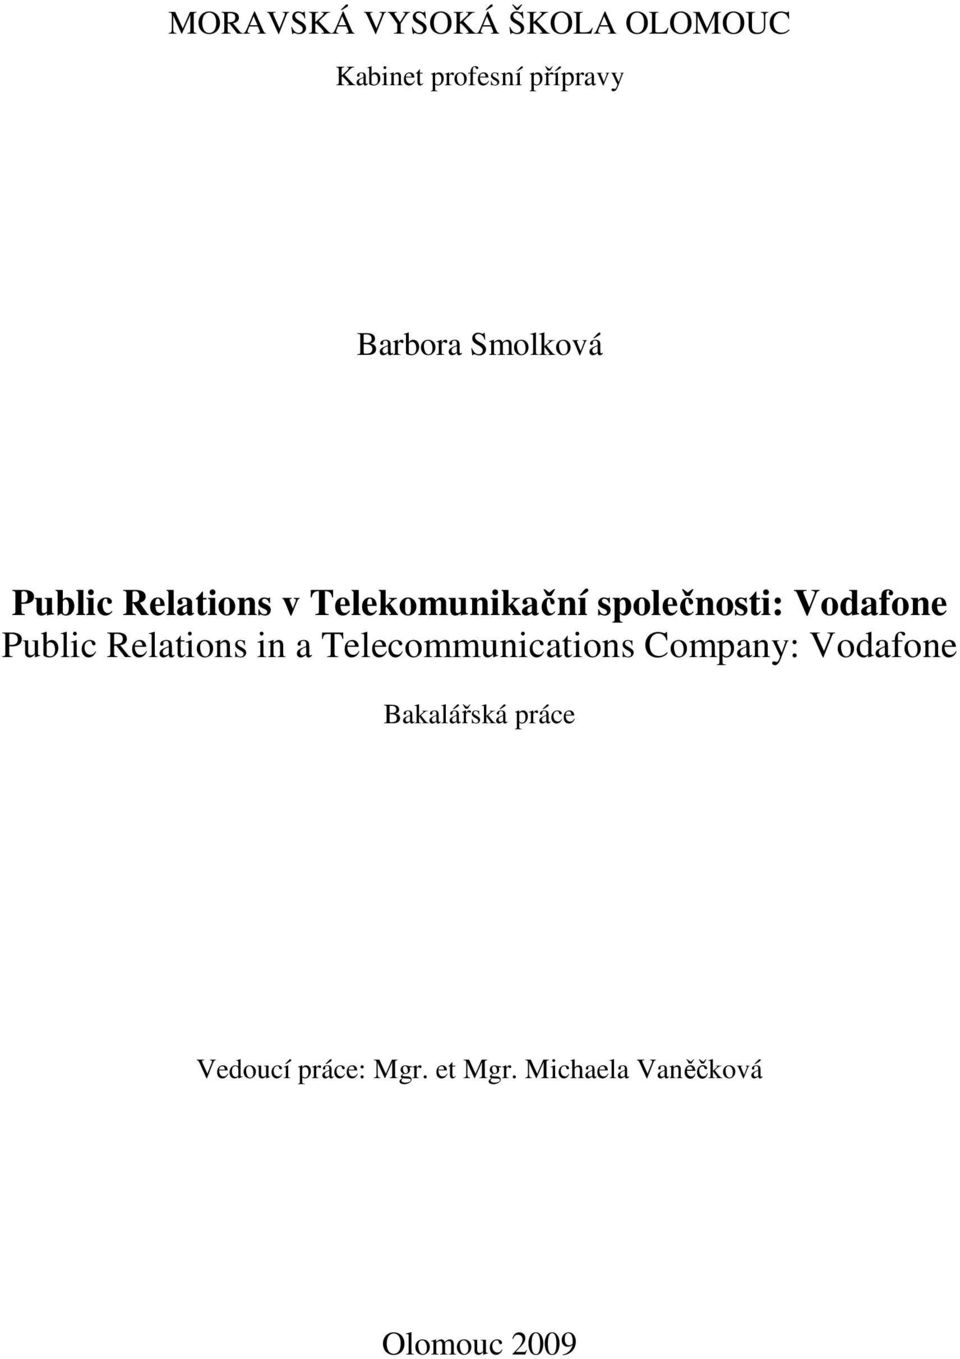 Public Relations in a Telecommunications Company: Vodafone